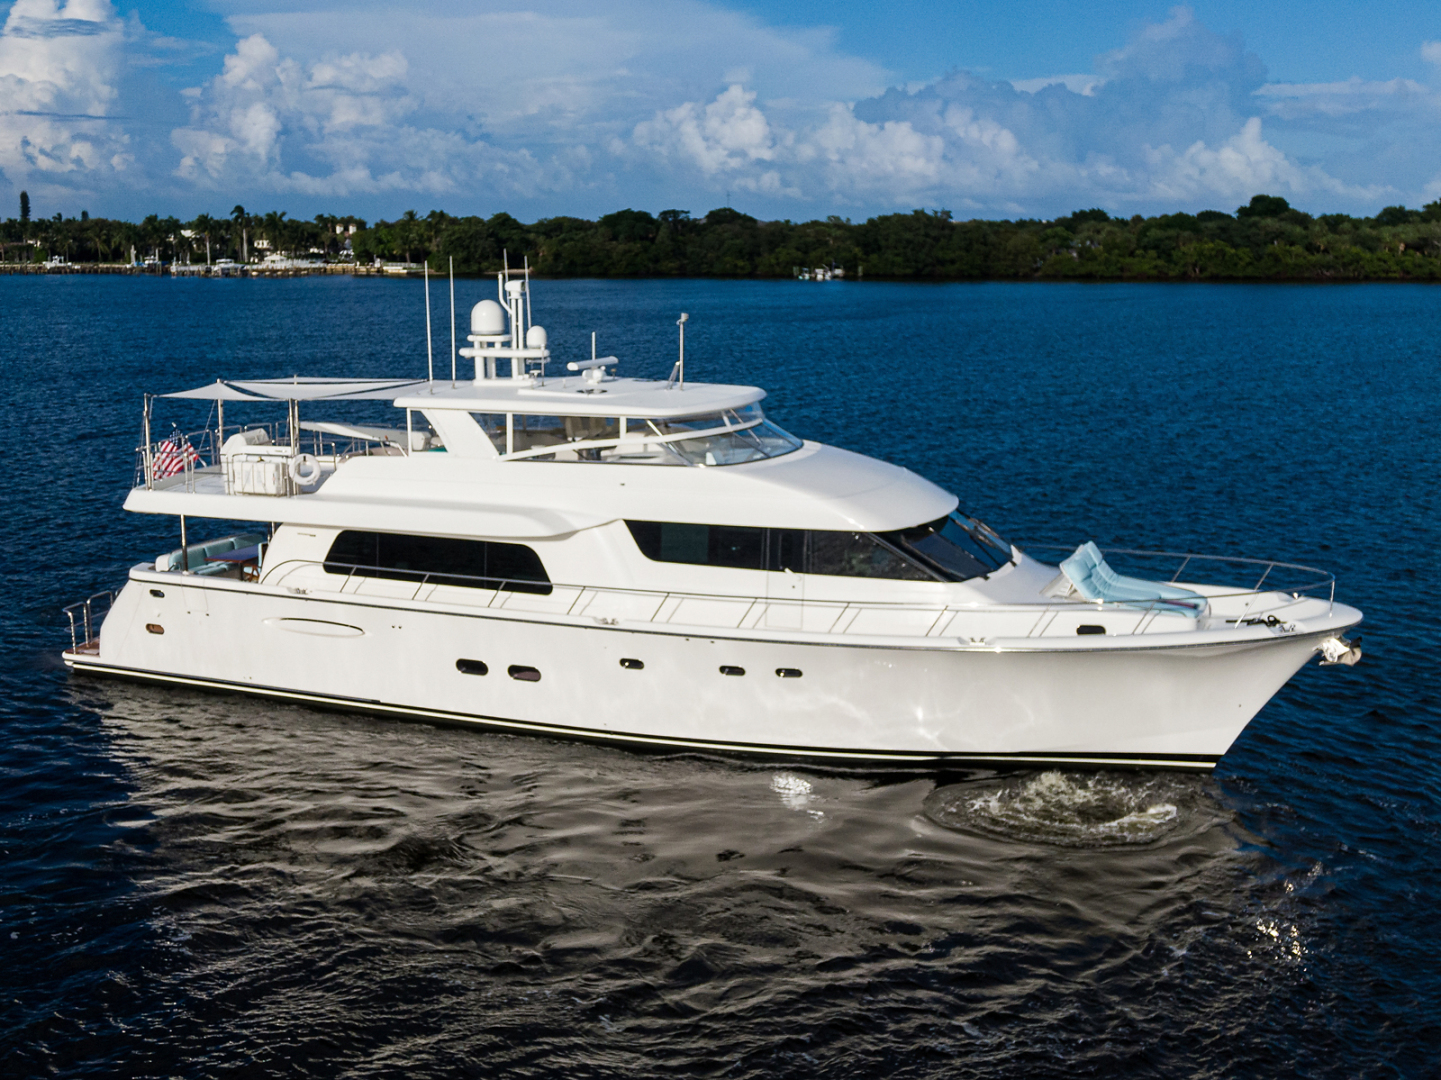 Pacific Mariner-Motor Yacht 2009-Celebrate North Palm Beach-Florida-United States-Celebrate-1515919 | Thumbnail